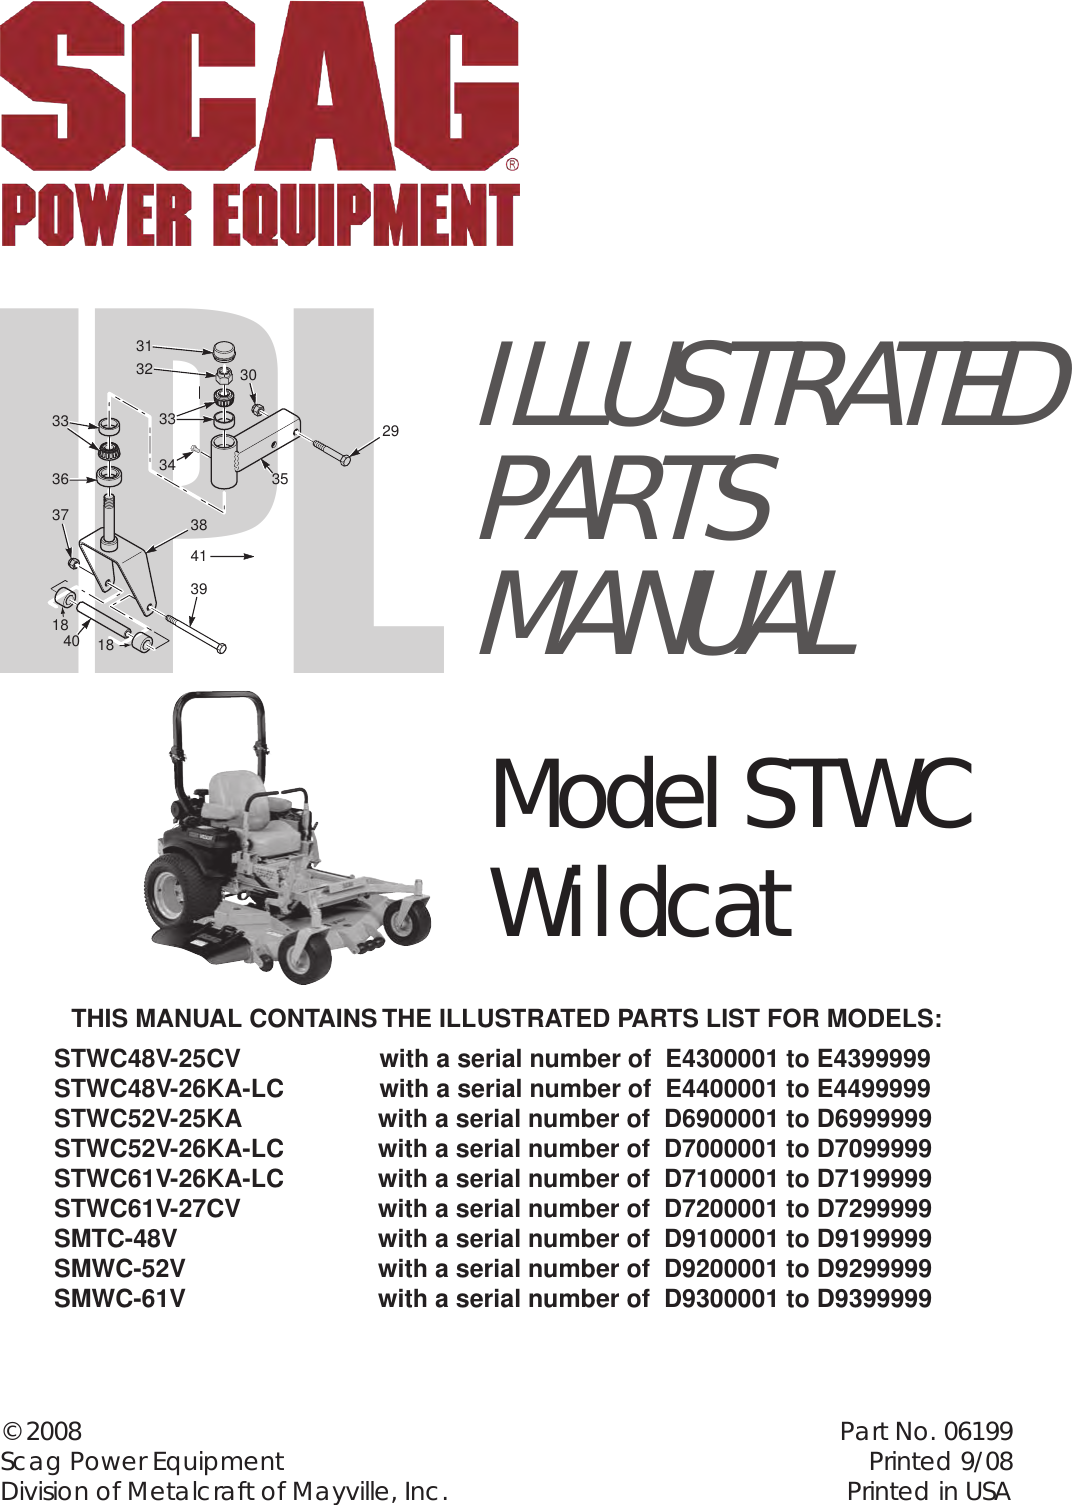 Scag Power Equipment Stwc Wildcat Smwc 52v Users Manual Ipl 06199 Wiring Harness